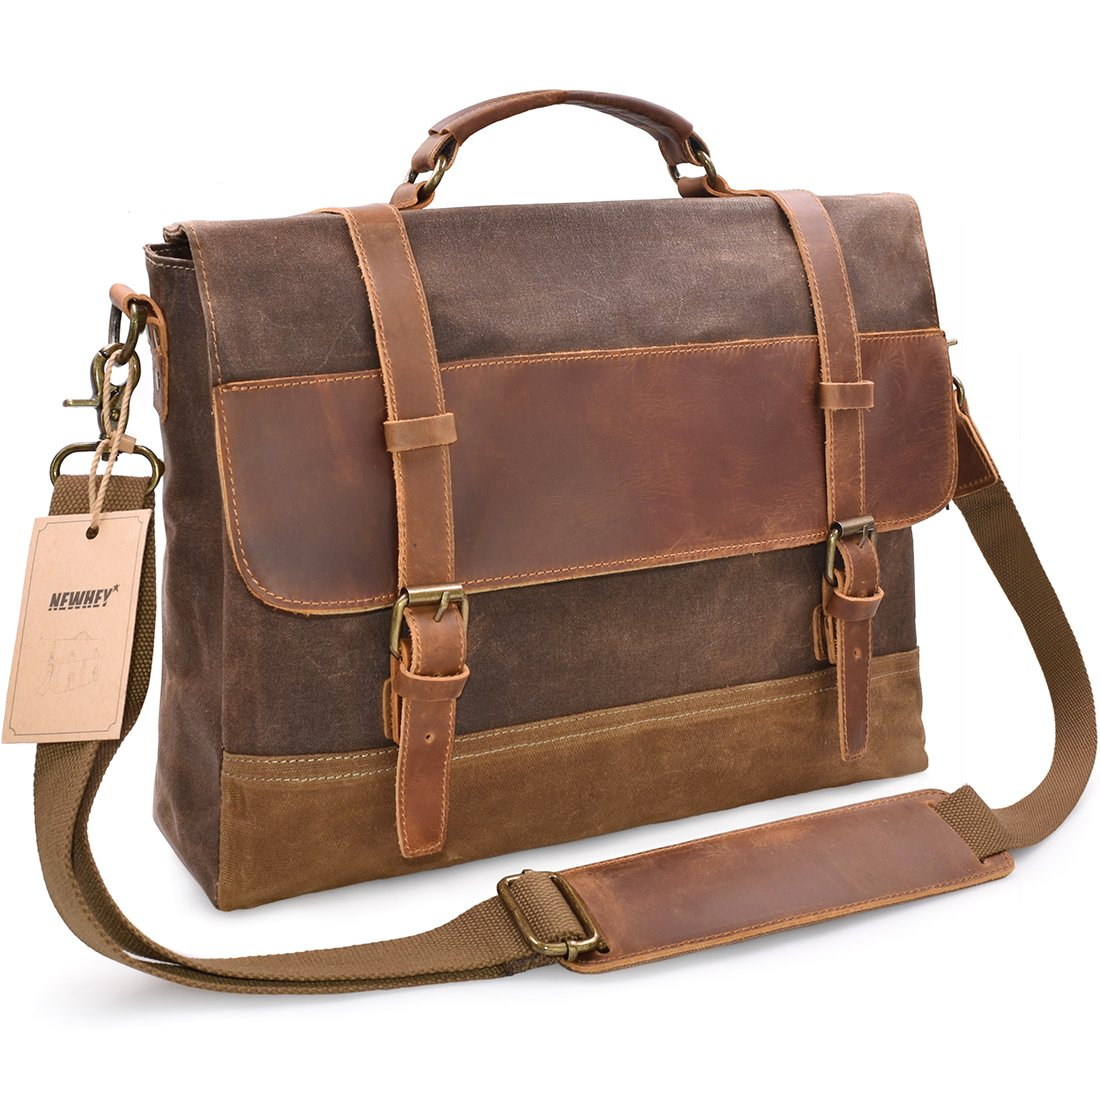 NEWHEY Mens Messenger Bag Waterproof Canvas Leather Computer Laptop Bag  15.6 Inch Briefcase Case Vintage Retro Waxed Canvas Genuine Leather Large  Satchel ... b460fdfd53e84